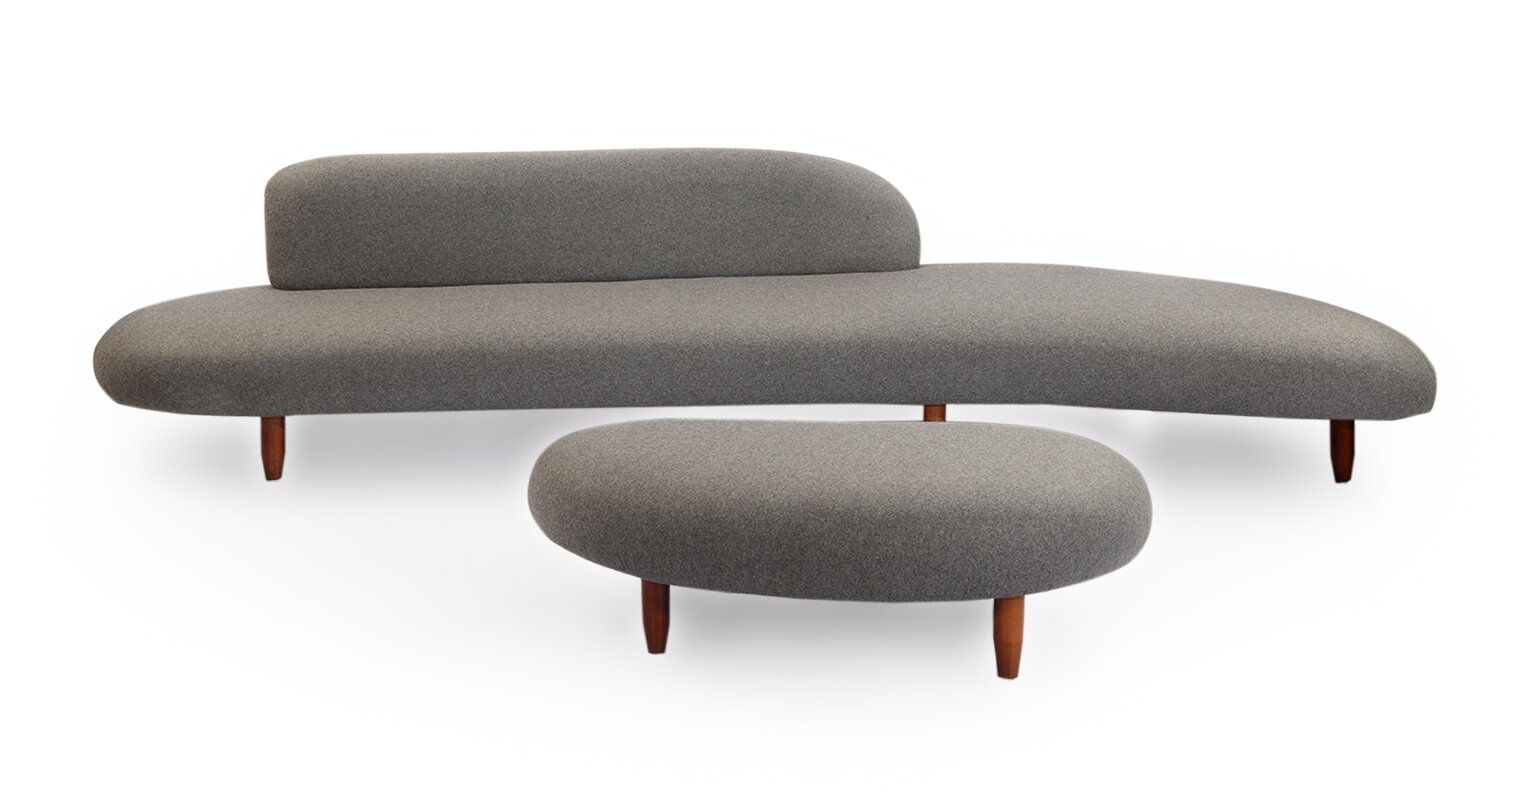 Charmant Potvin Mid Century Modern Sofa And Ottoman Set